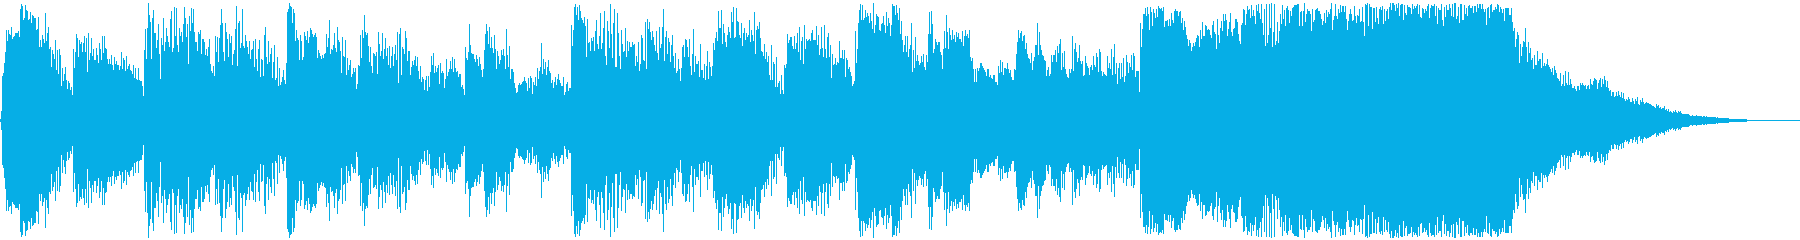 An orchestra but cute jingle's reproduced waveform